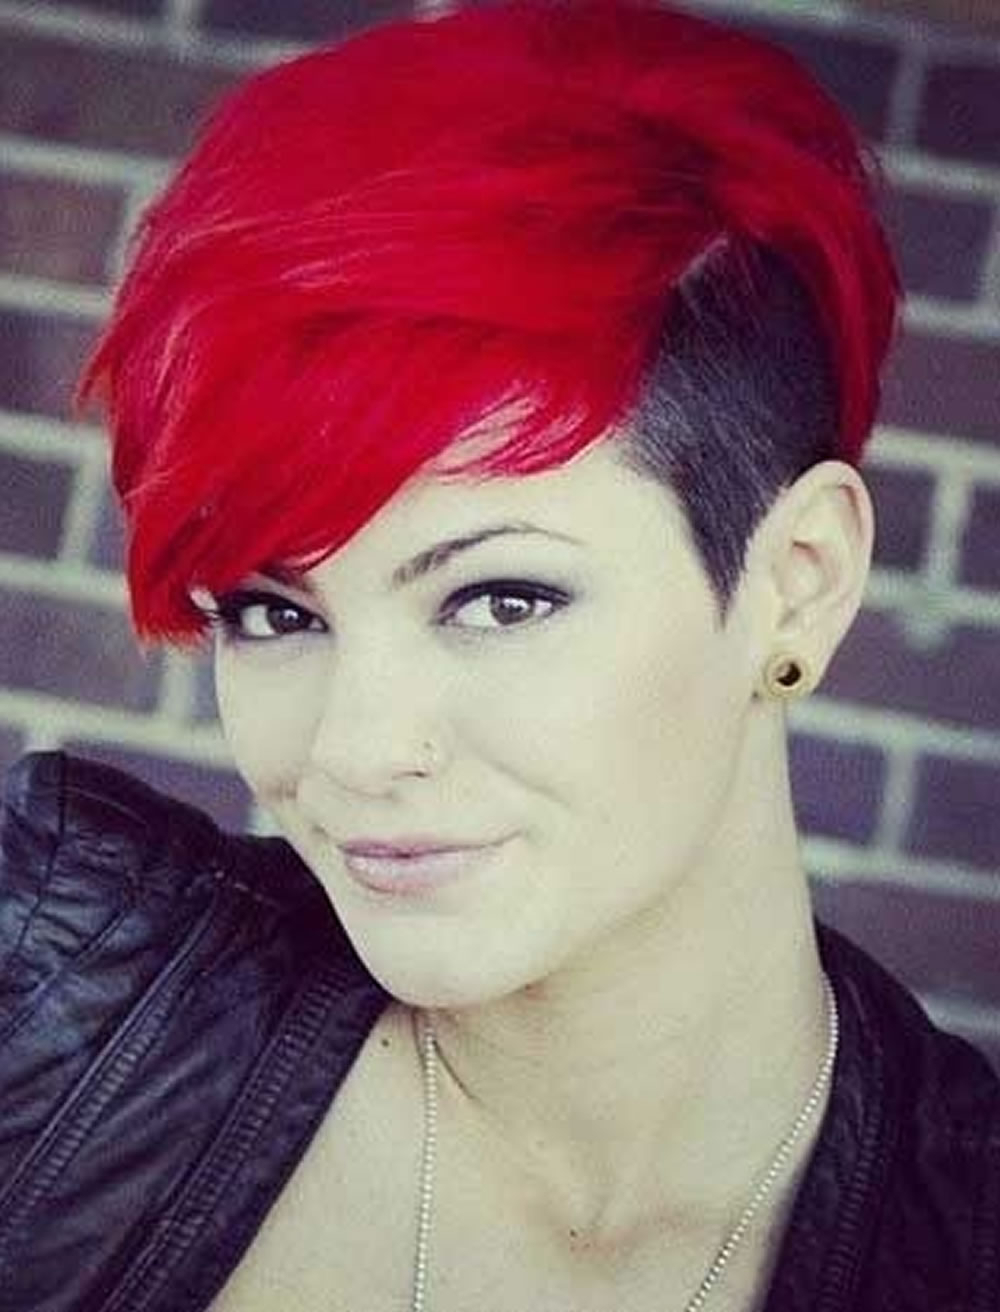 Red Hair Color For Short Hairstyles   27 Cool Haircut Tutorial For Inside Bright Red Short Hairstyles (View 10 of 25)